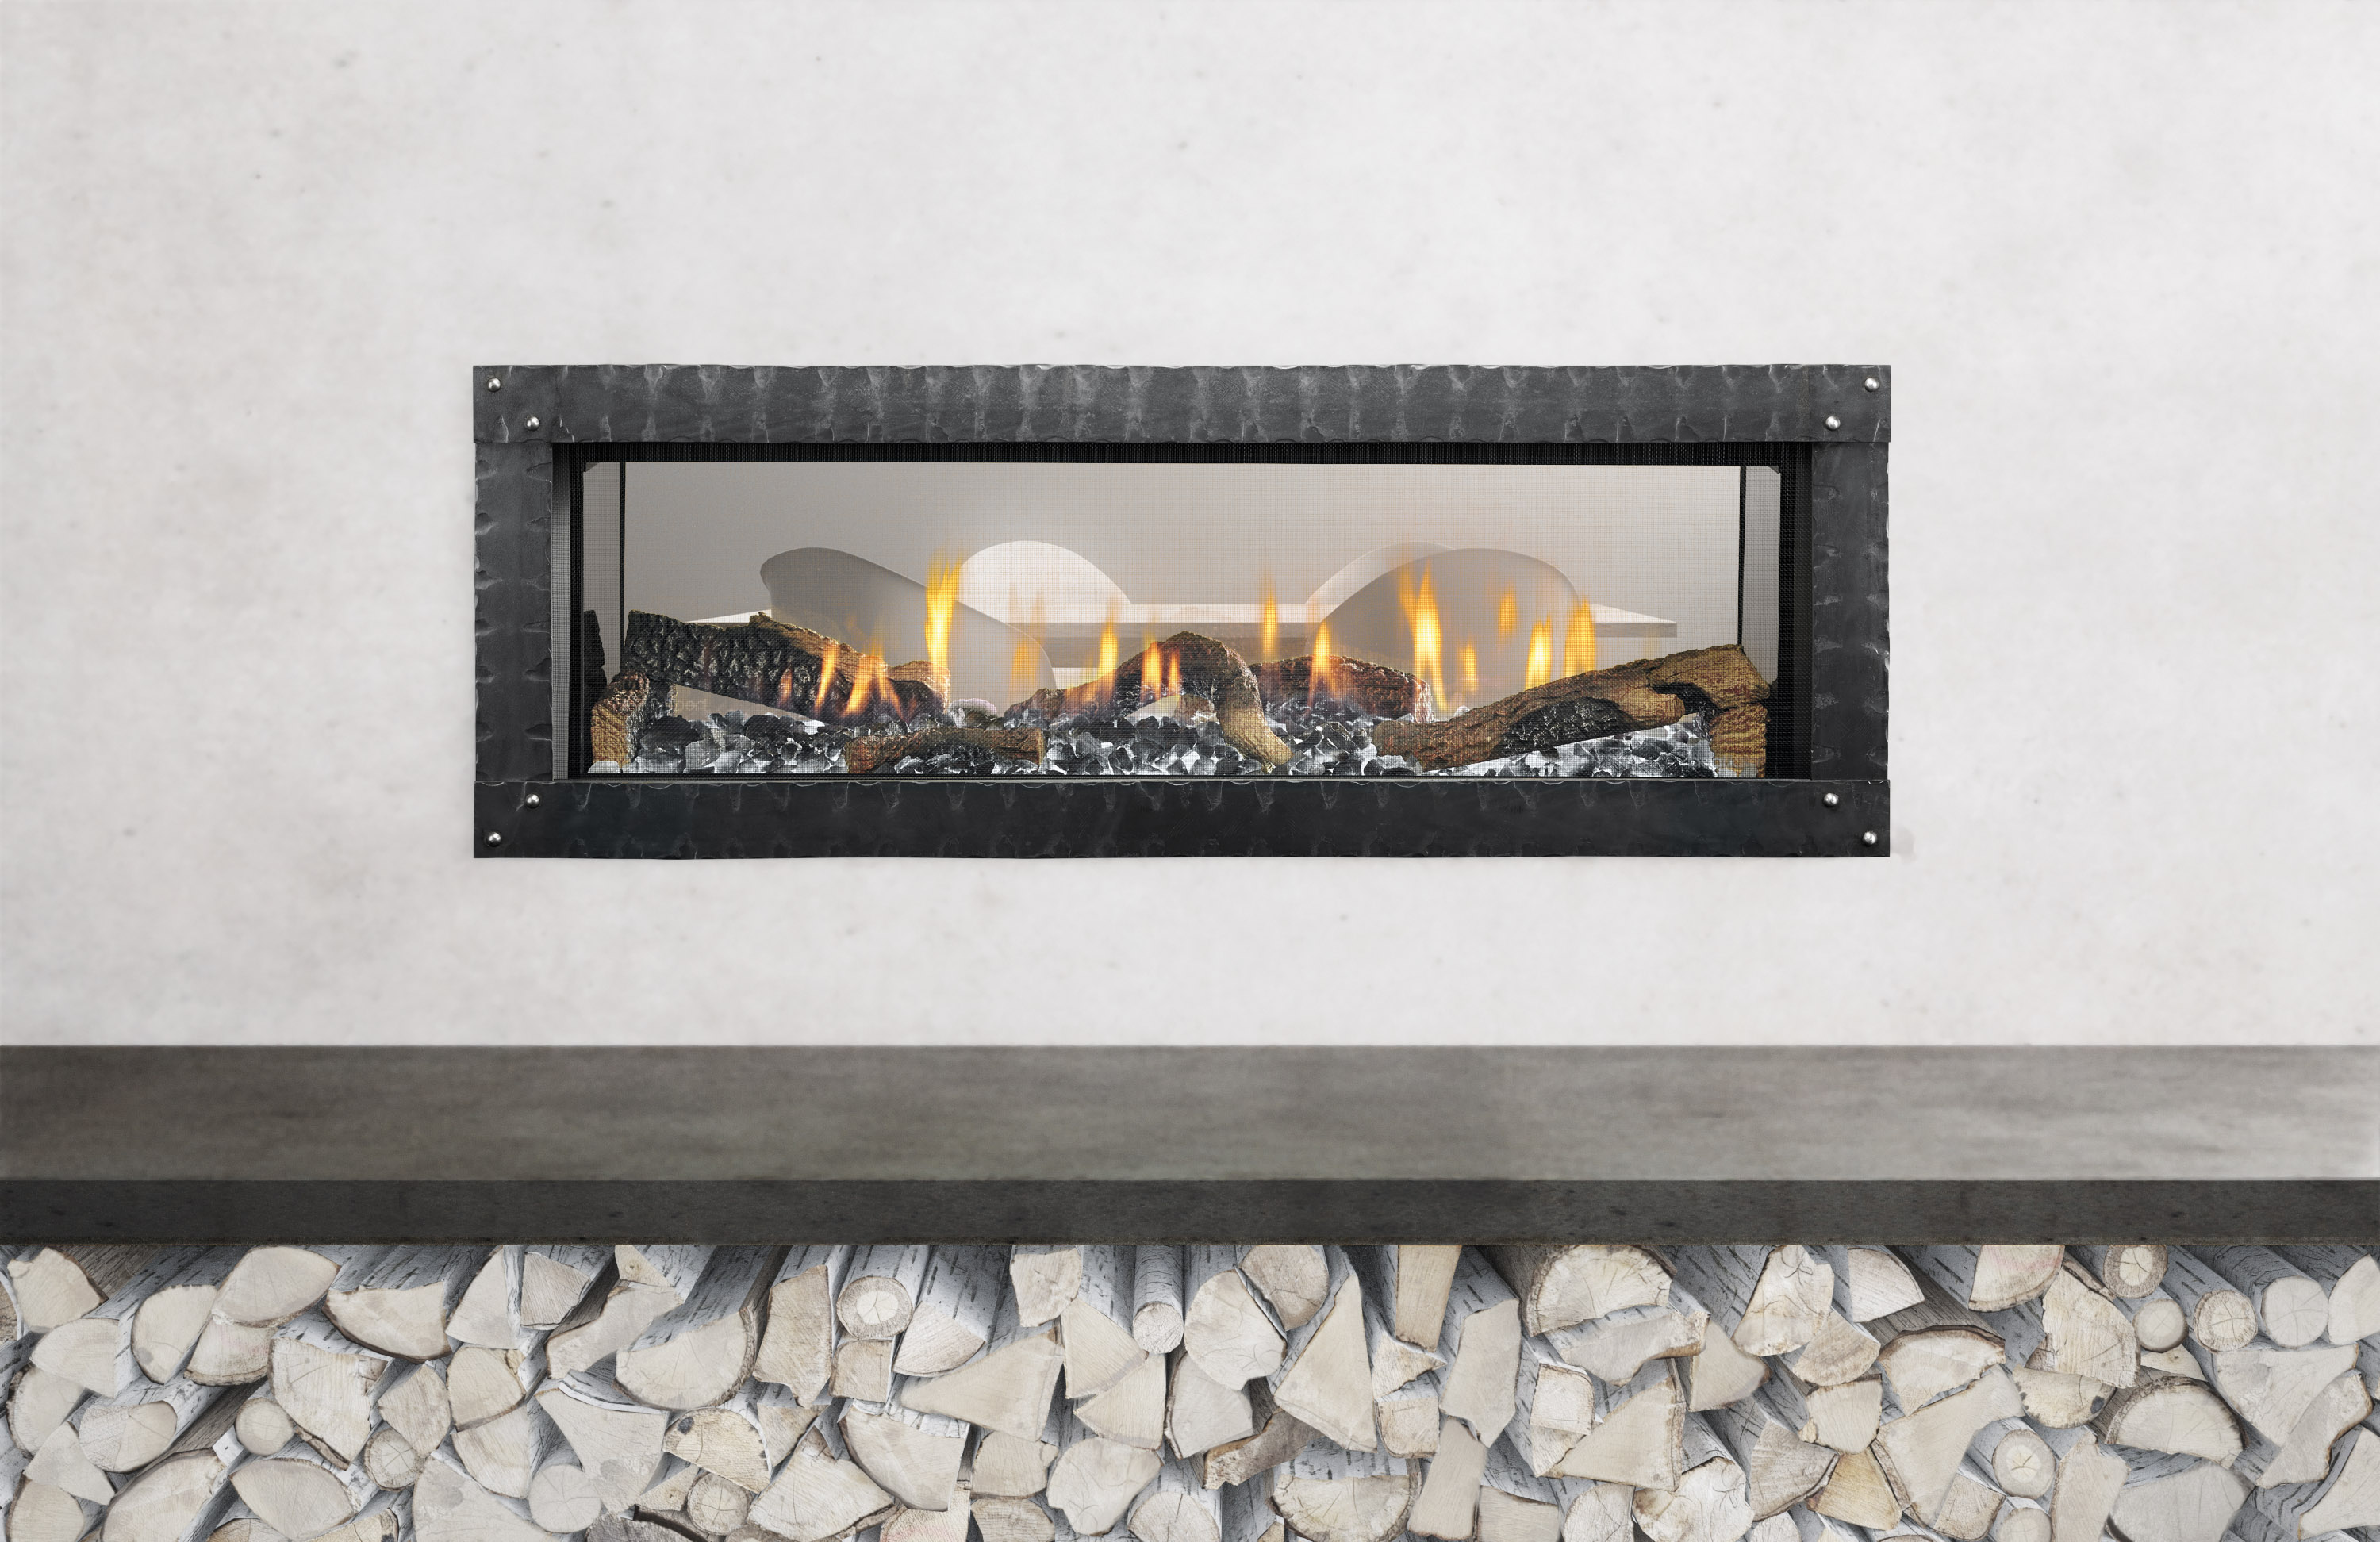 linear fireplaces trend up u2014even behind barrier screens